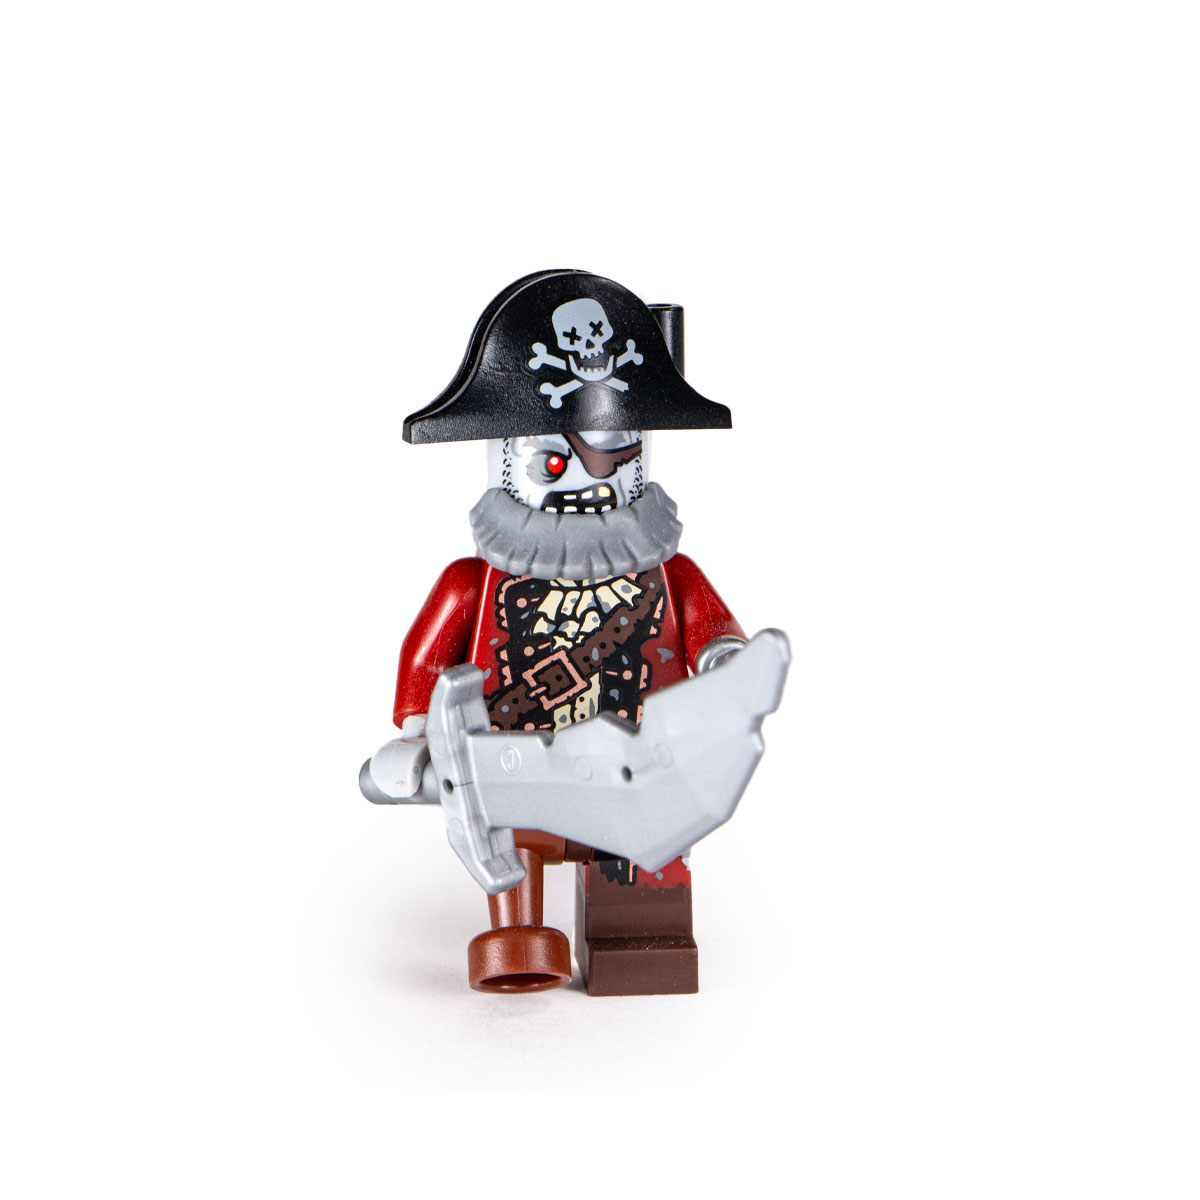 Lego Zombie Pirate Collectible Minifigures 71010 Series 14